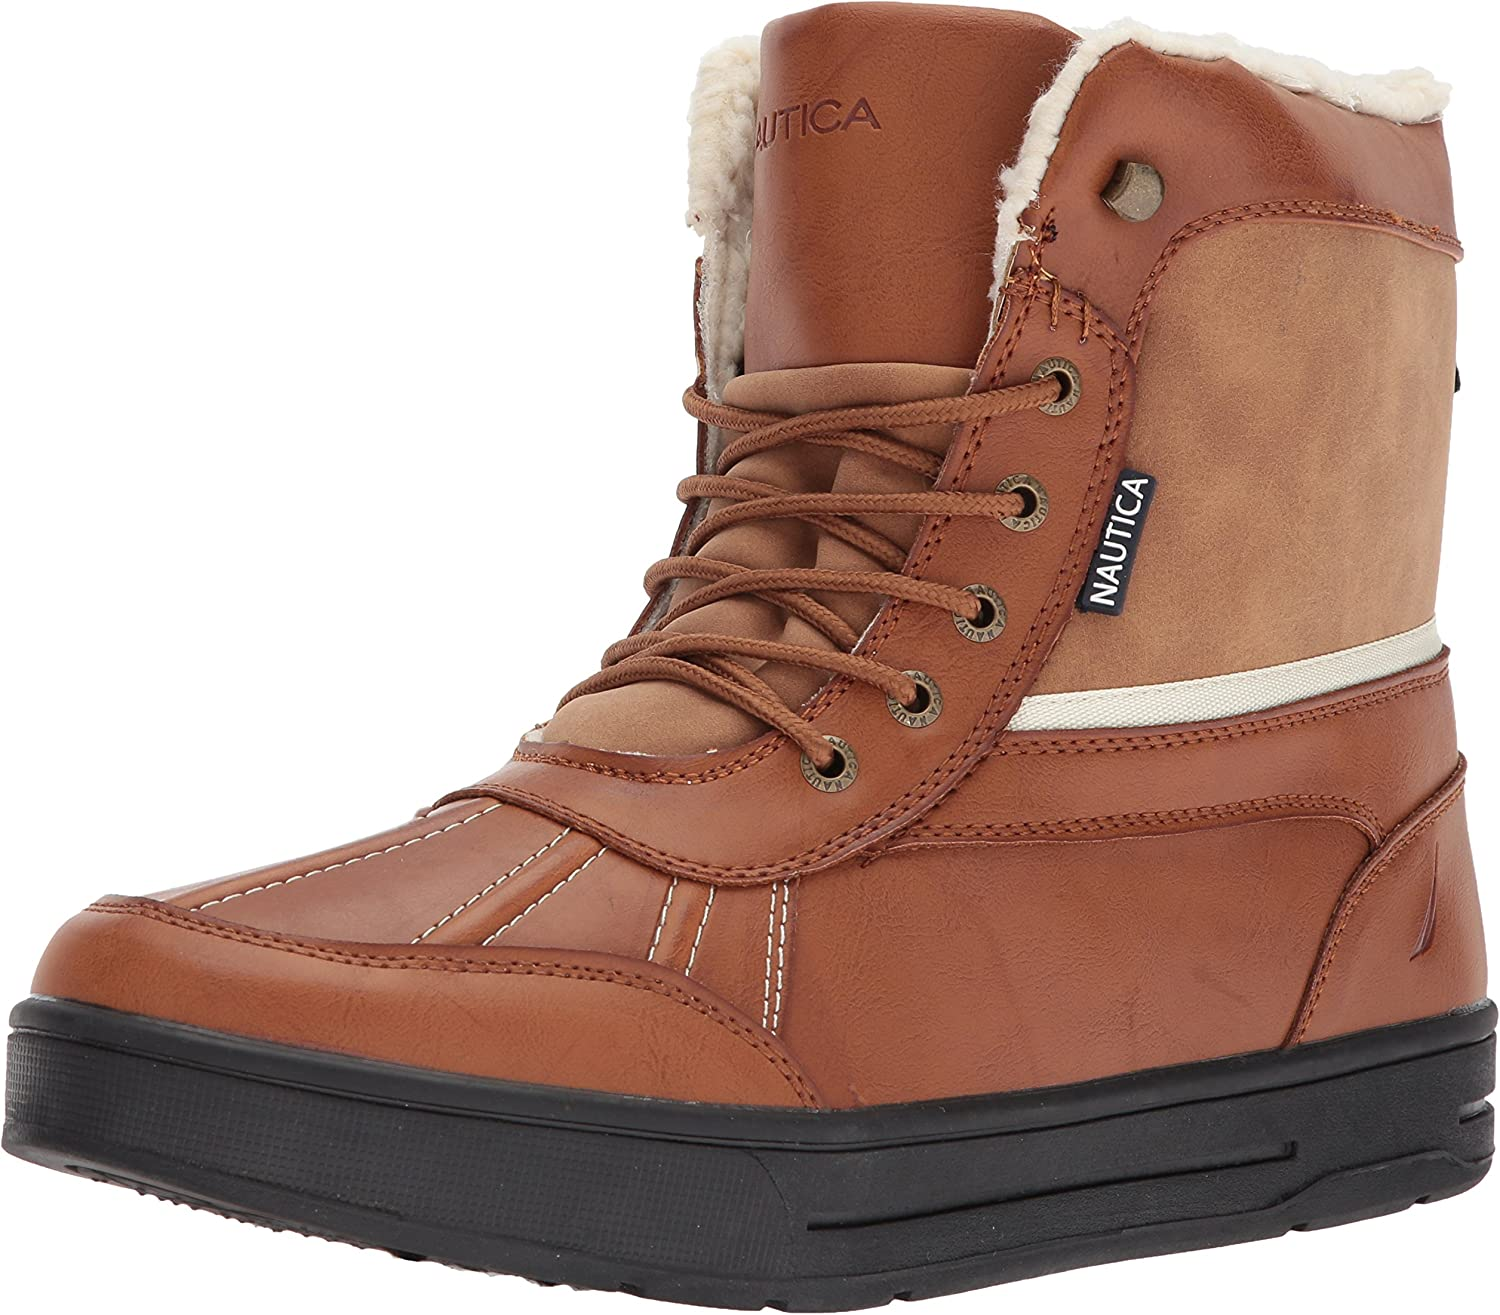 Nautica Men's Lockview Ankle Boot